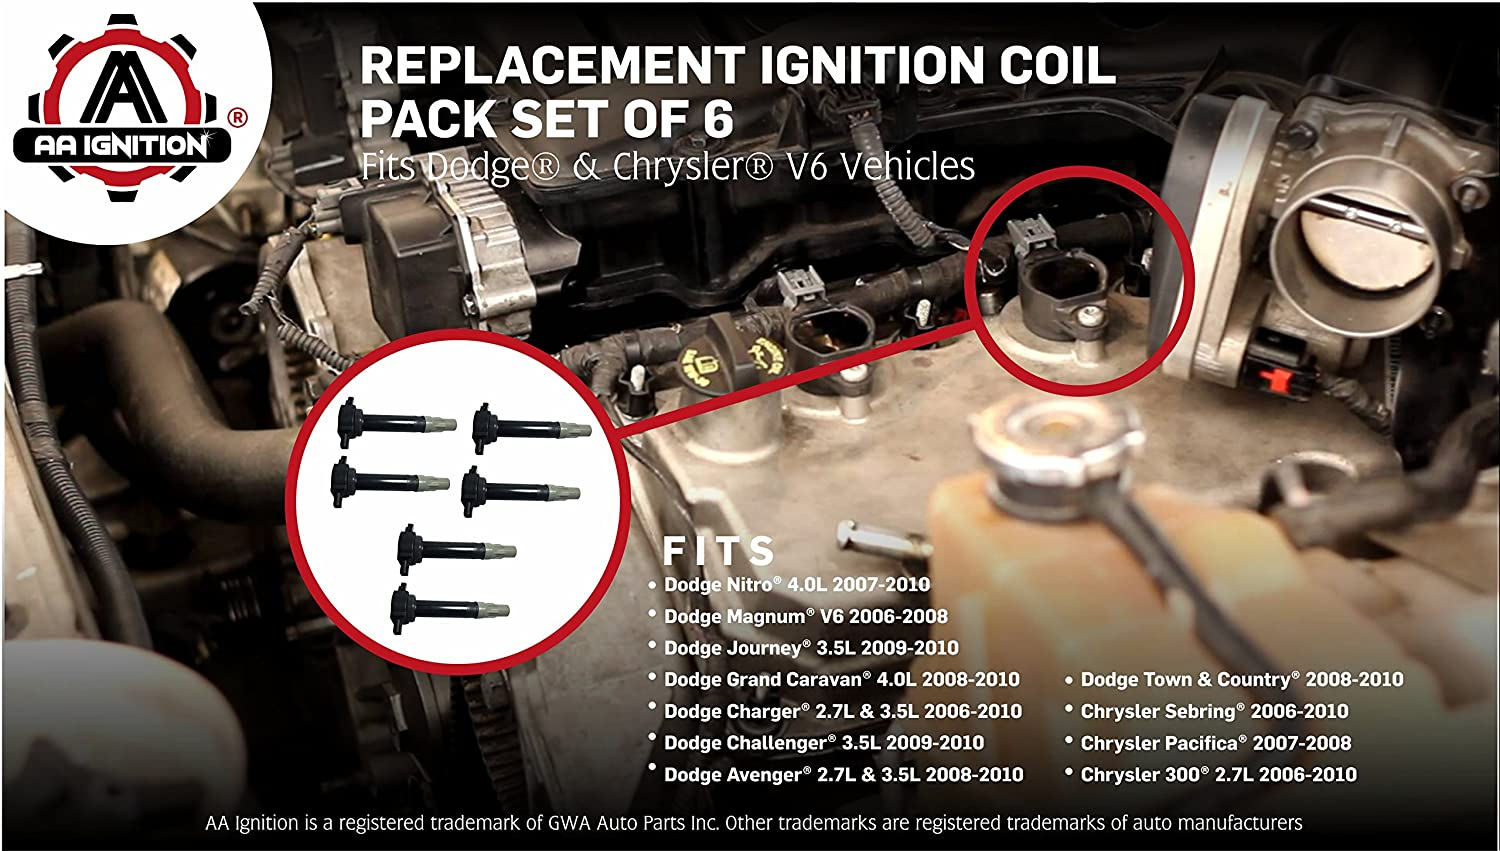 Ignition Coil Pack Set Of 6 Fits Dodge Chrysler V6 2010 Journey Fuel Filter Location 25l 27l 35l Replaces 4606869aa Magnum Charger Nitro